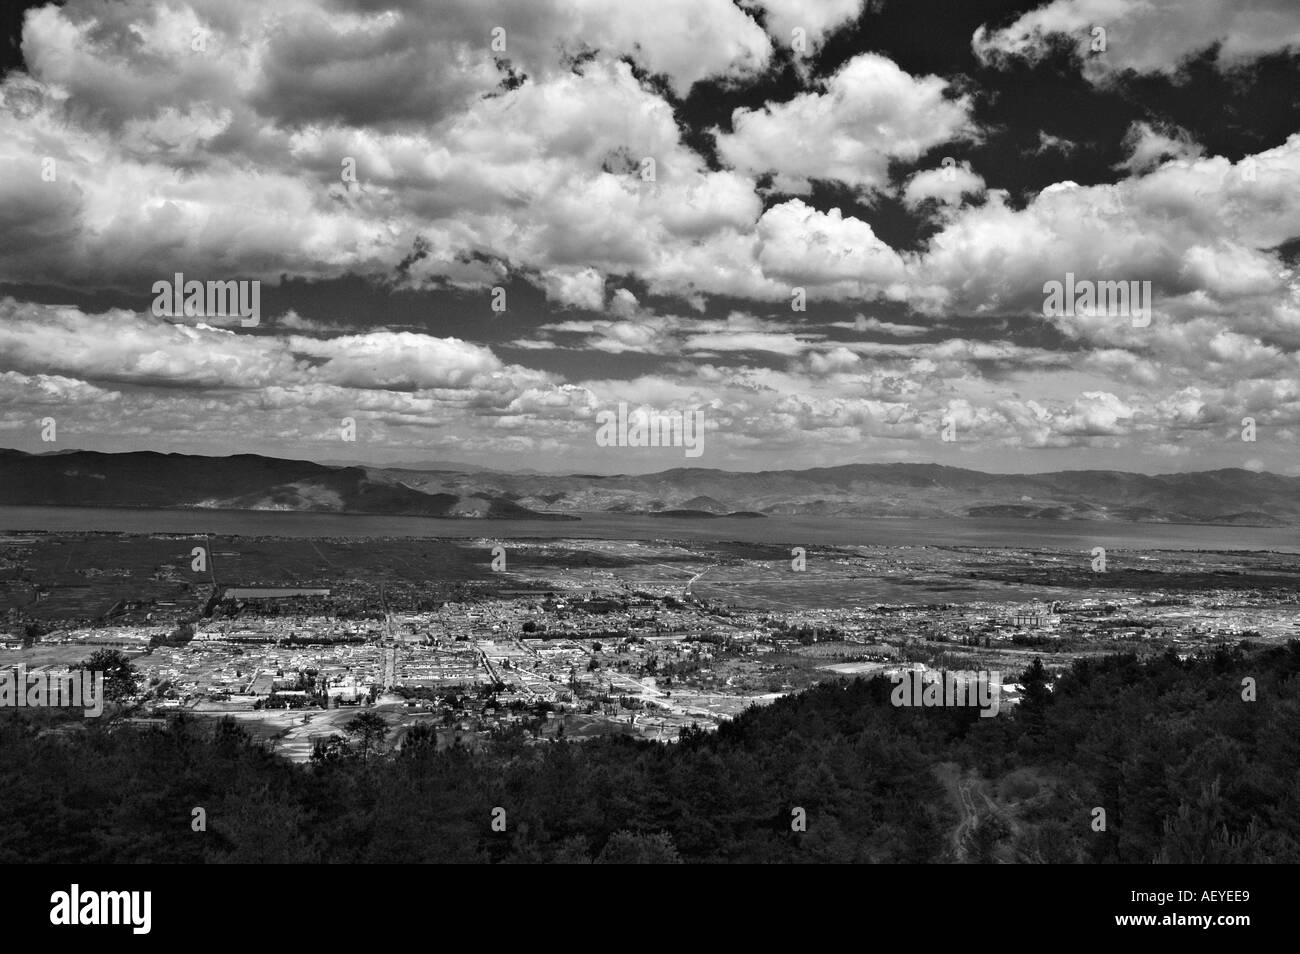 Dali town seen from Changshan - Stock Image